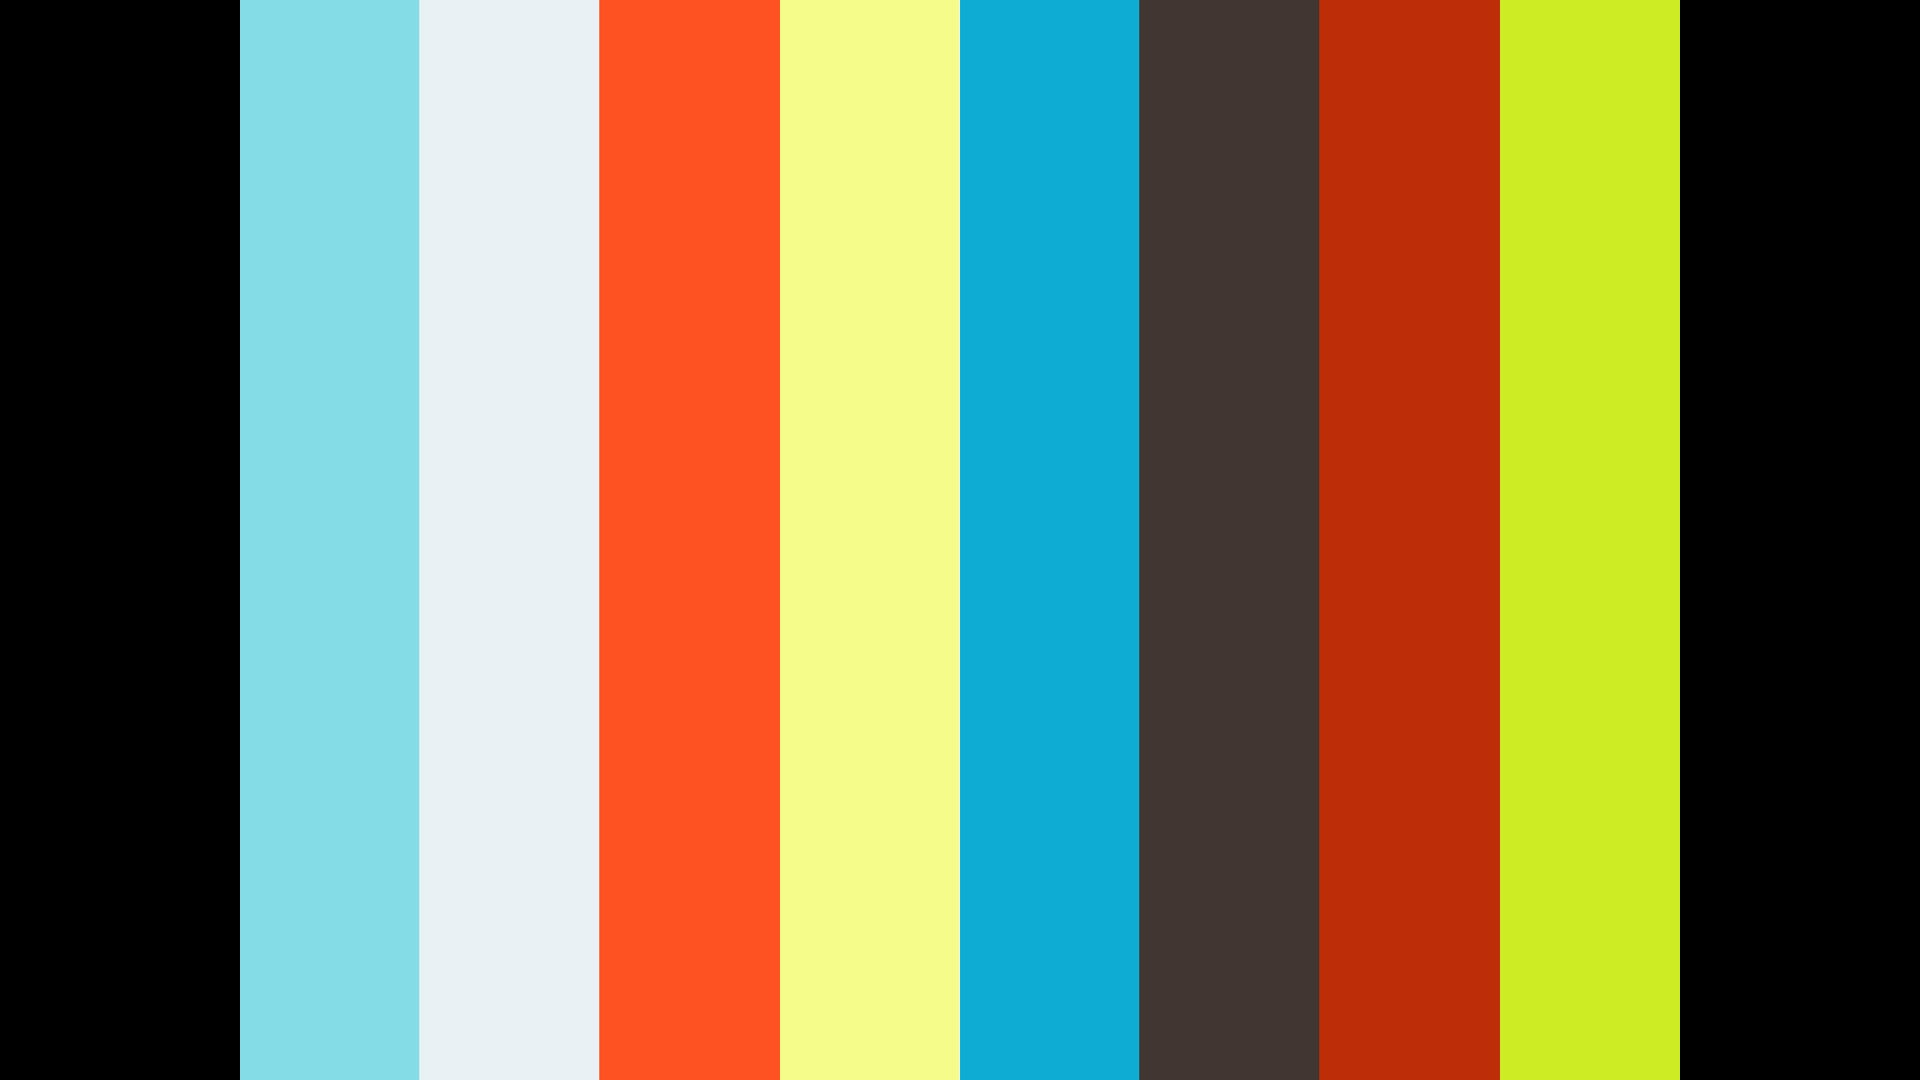 Interview with Anthony Di Iorio